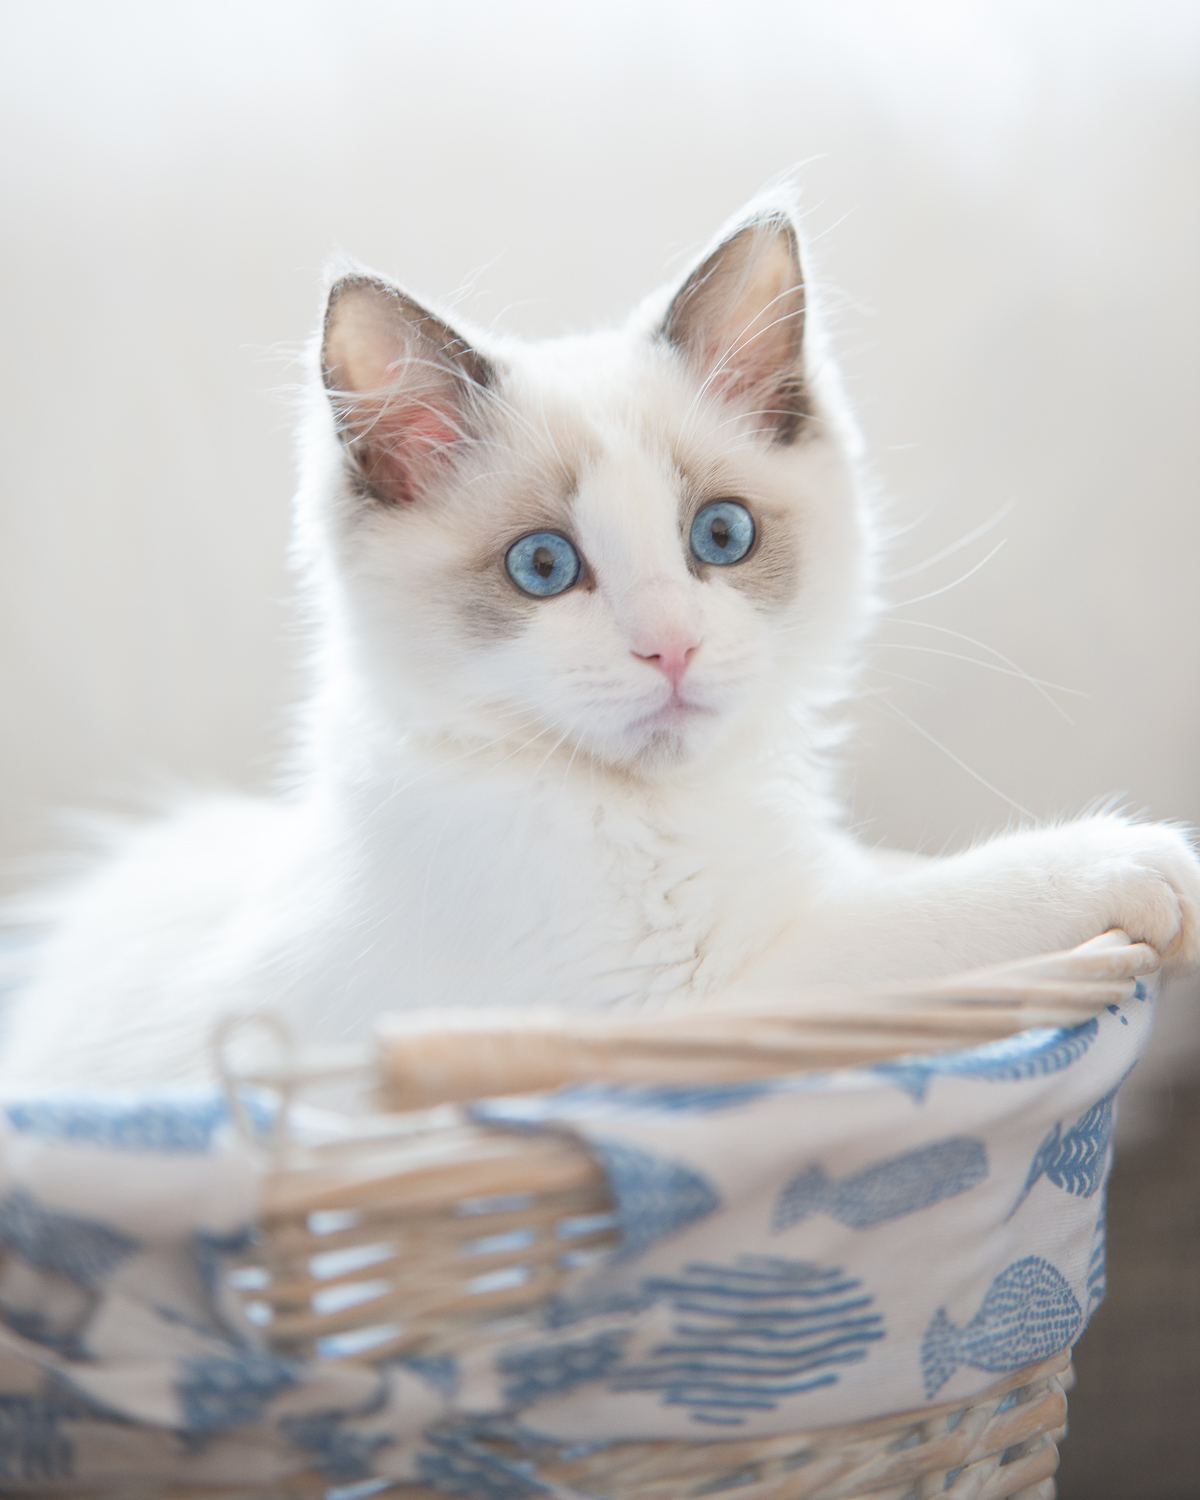 If ever there was a kitten photo to pin, this would be it. That curiously cheeky look, flashing perfect blue orbs.